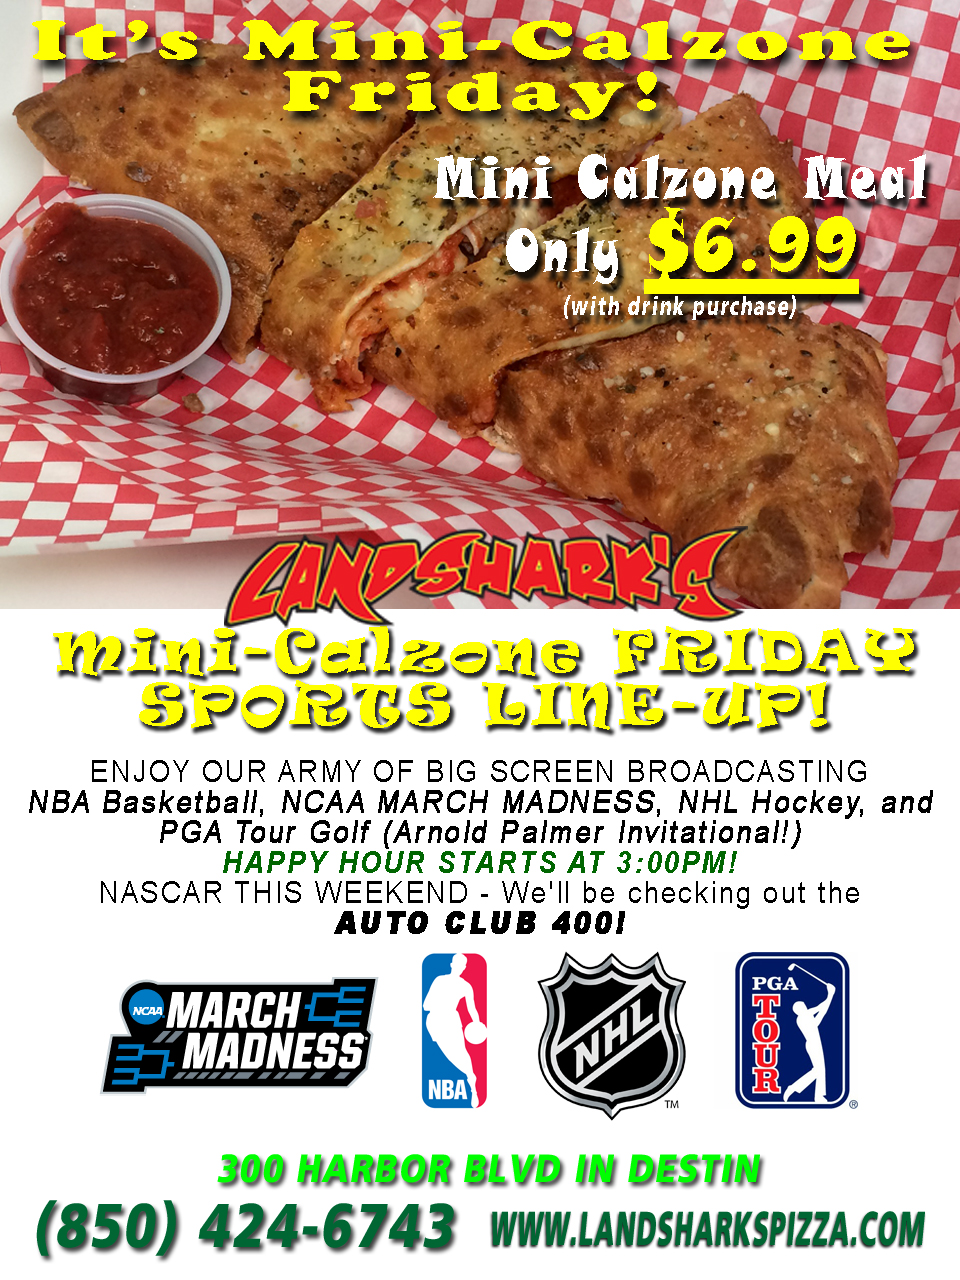 Landsharks Destin FL Mini Calzone Friday Special